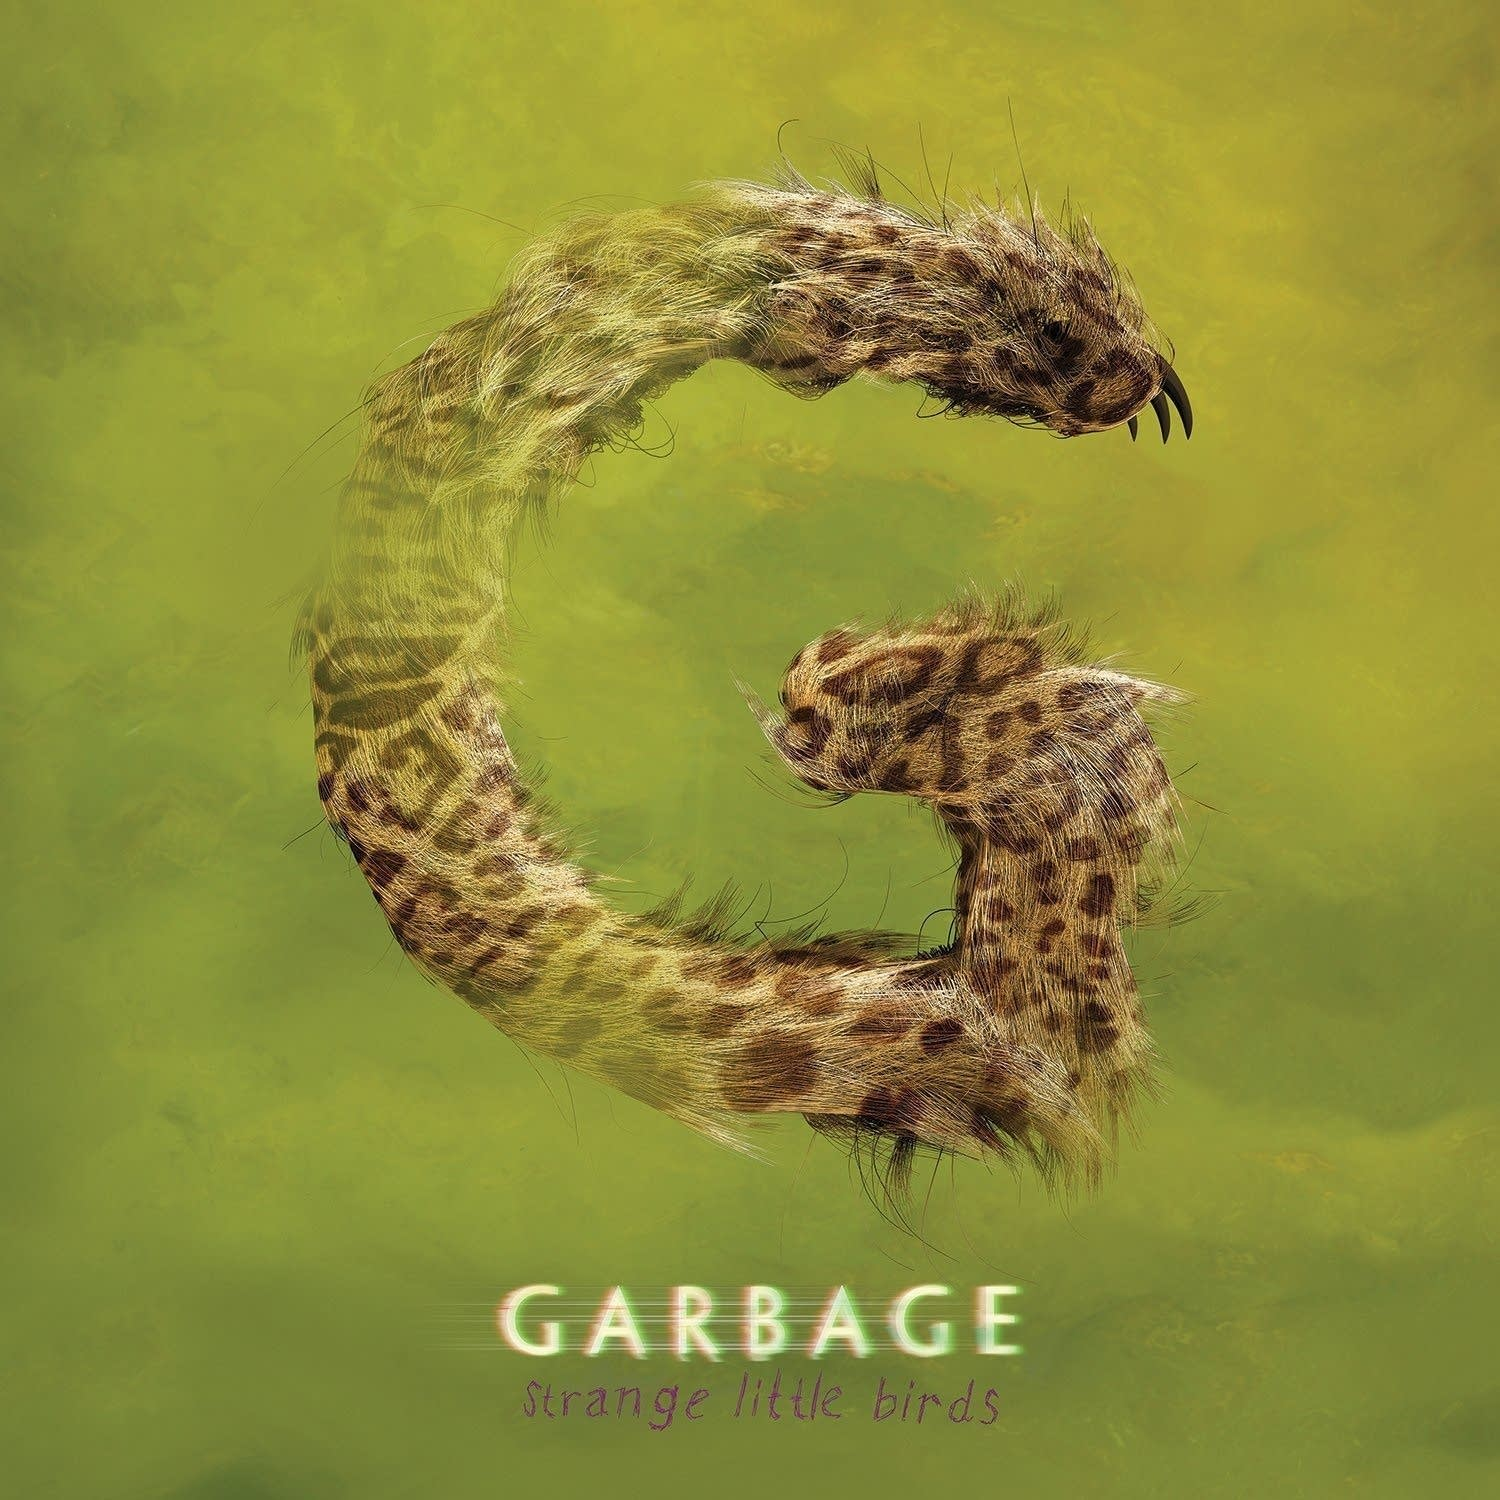 Garbage, 'Strange Little Birds'